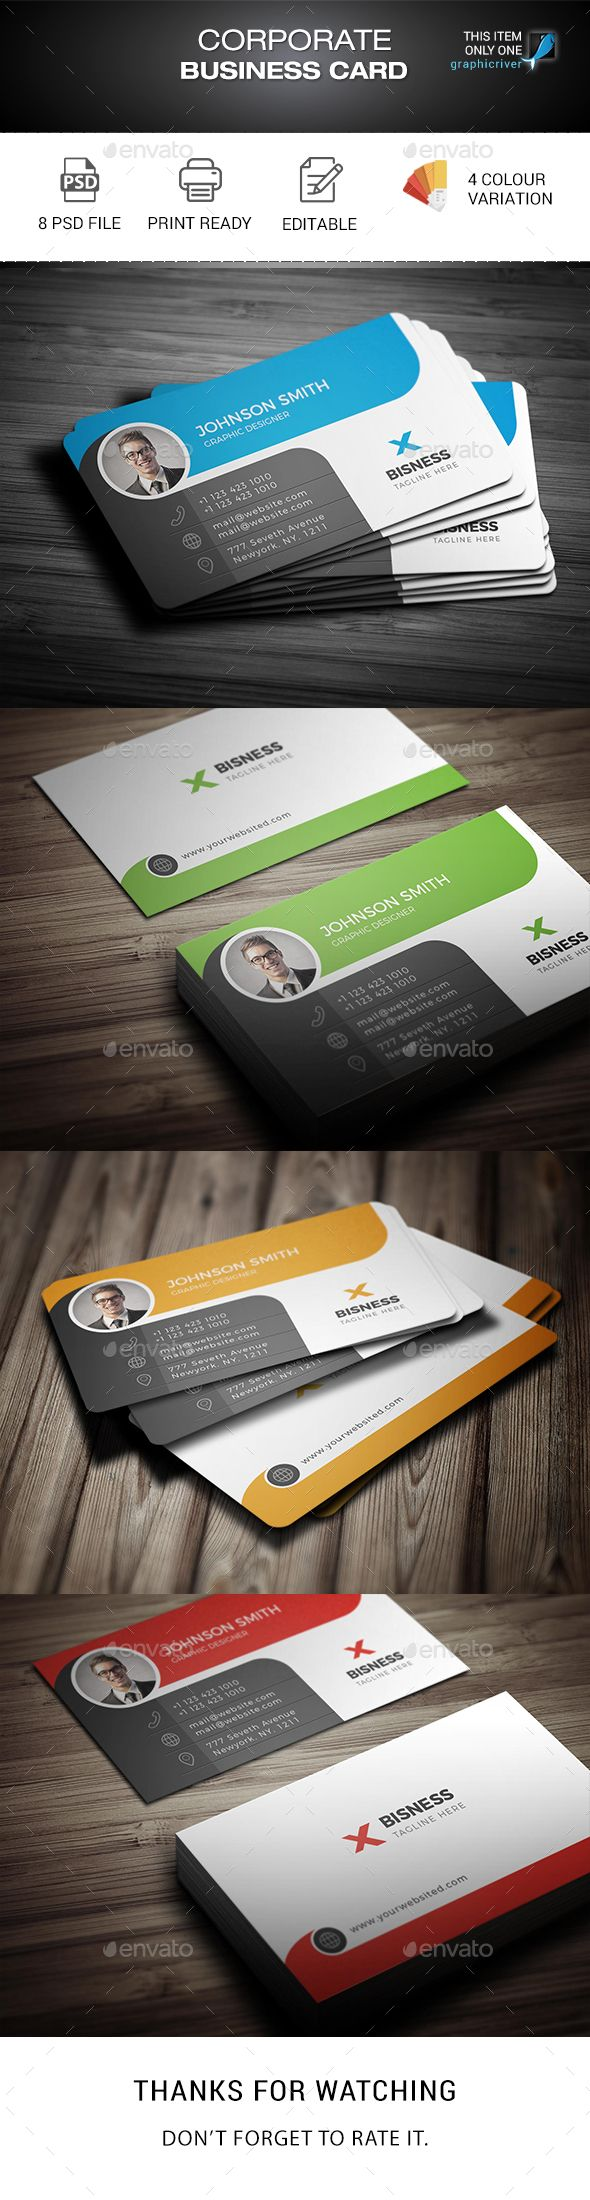 Business Card Template - Corporate Business Cardshttps://www.fiverr.com/rony5281/do-latest-visiting-card-with-eye-catching-design-for-you